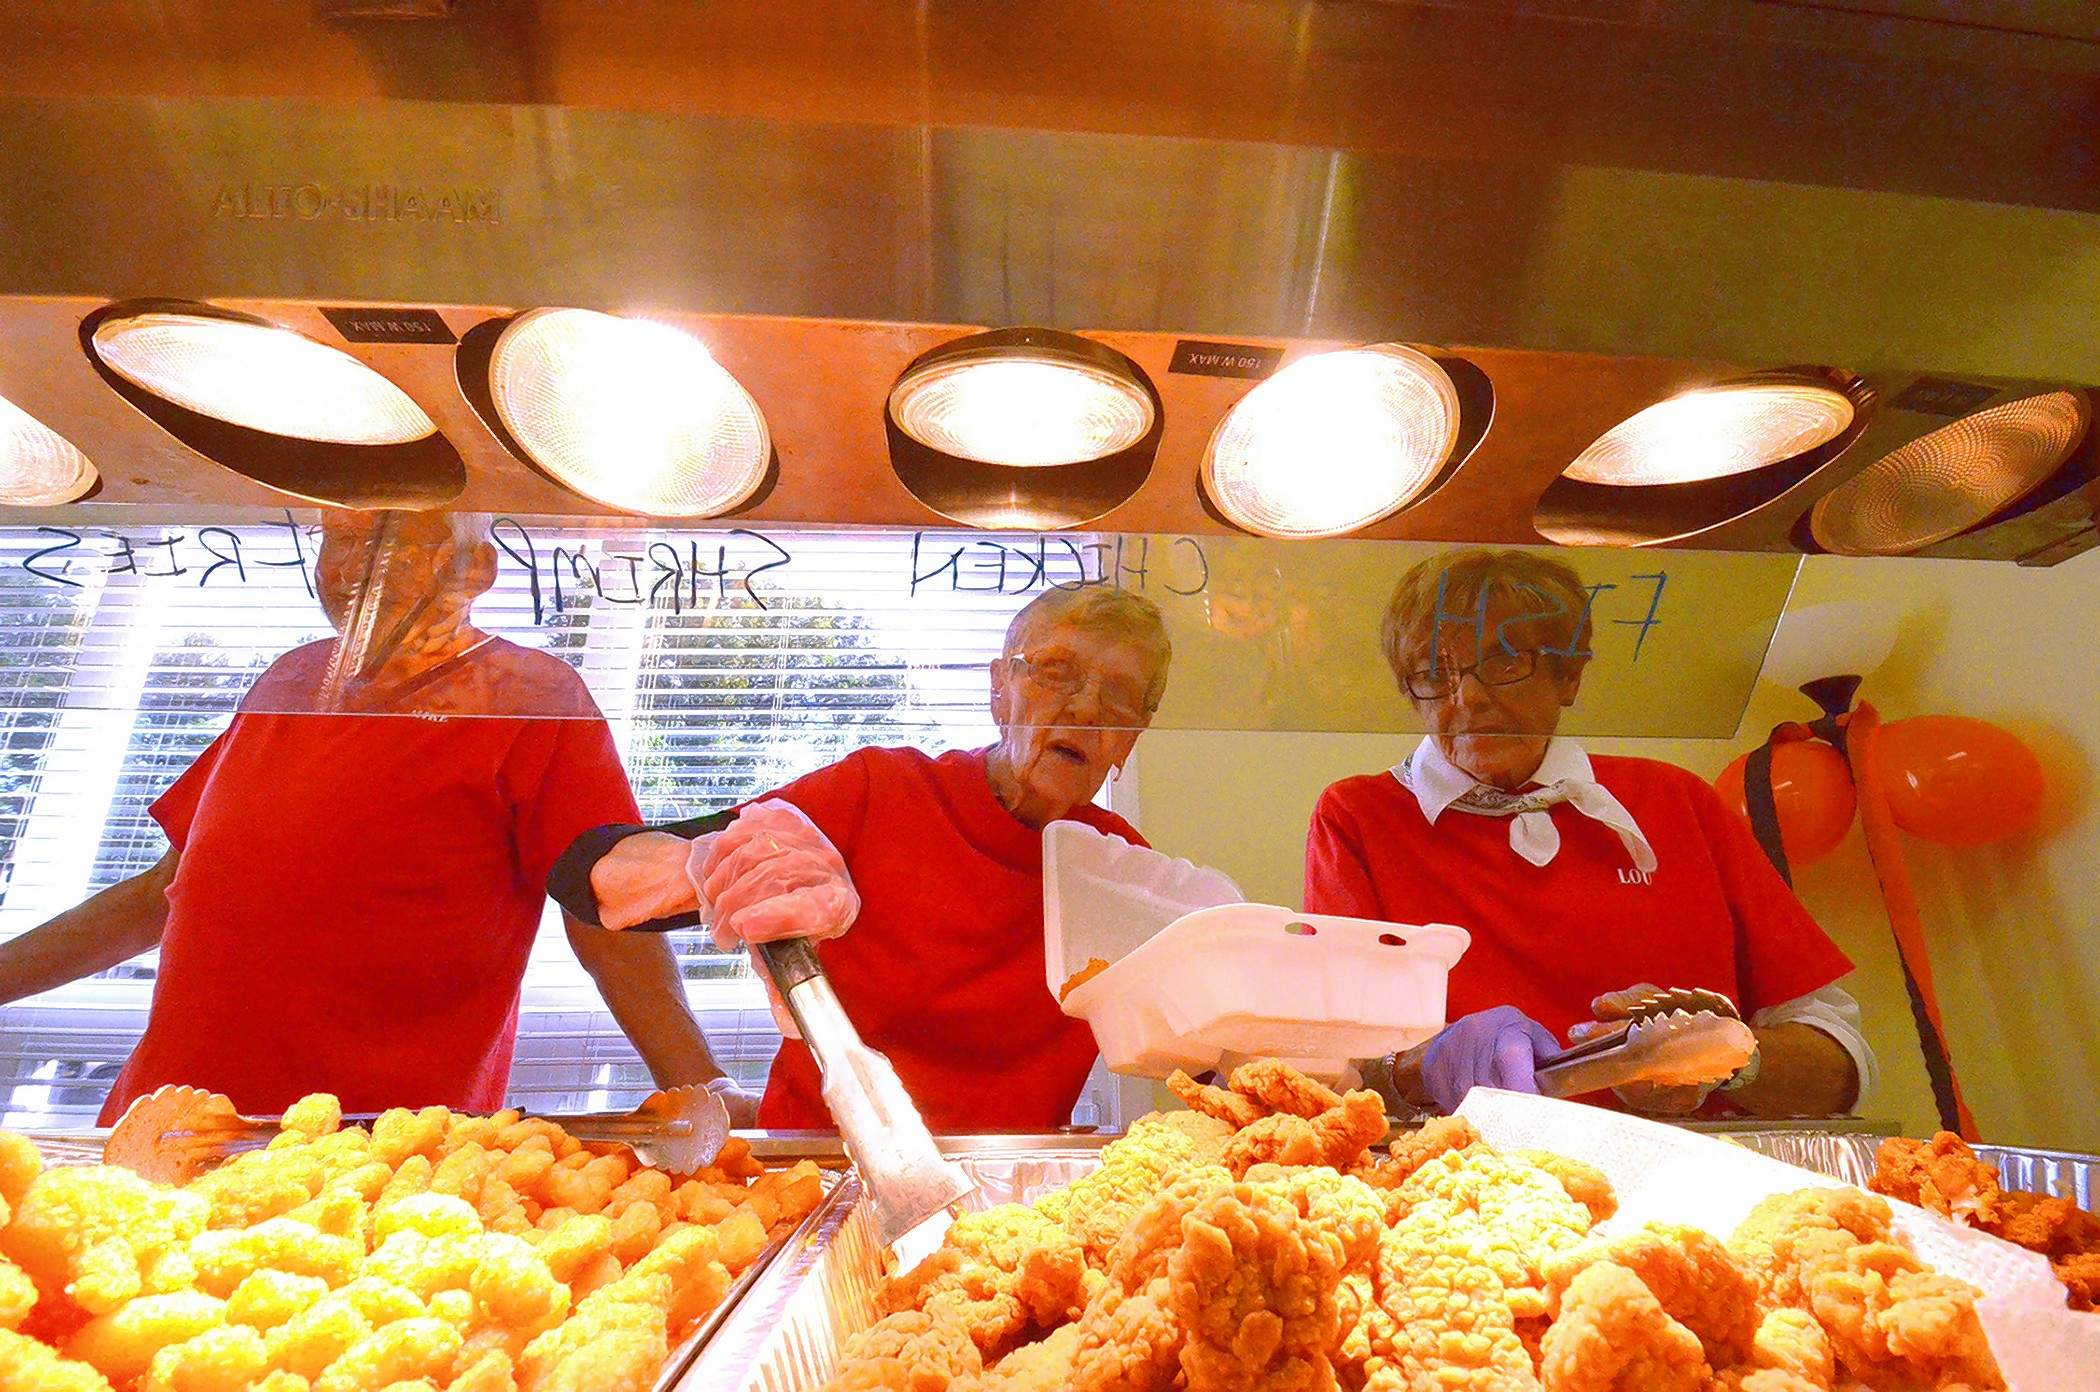 St. Joseph Church members Mike Svenski, Patsy Nave and Lou Cooper kept busy filling take-out orders Friday. For the complete story, see page 2.